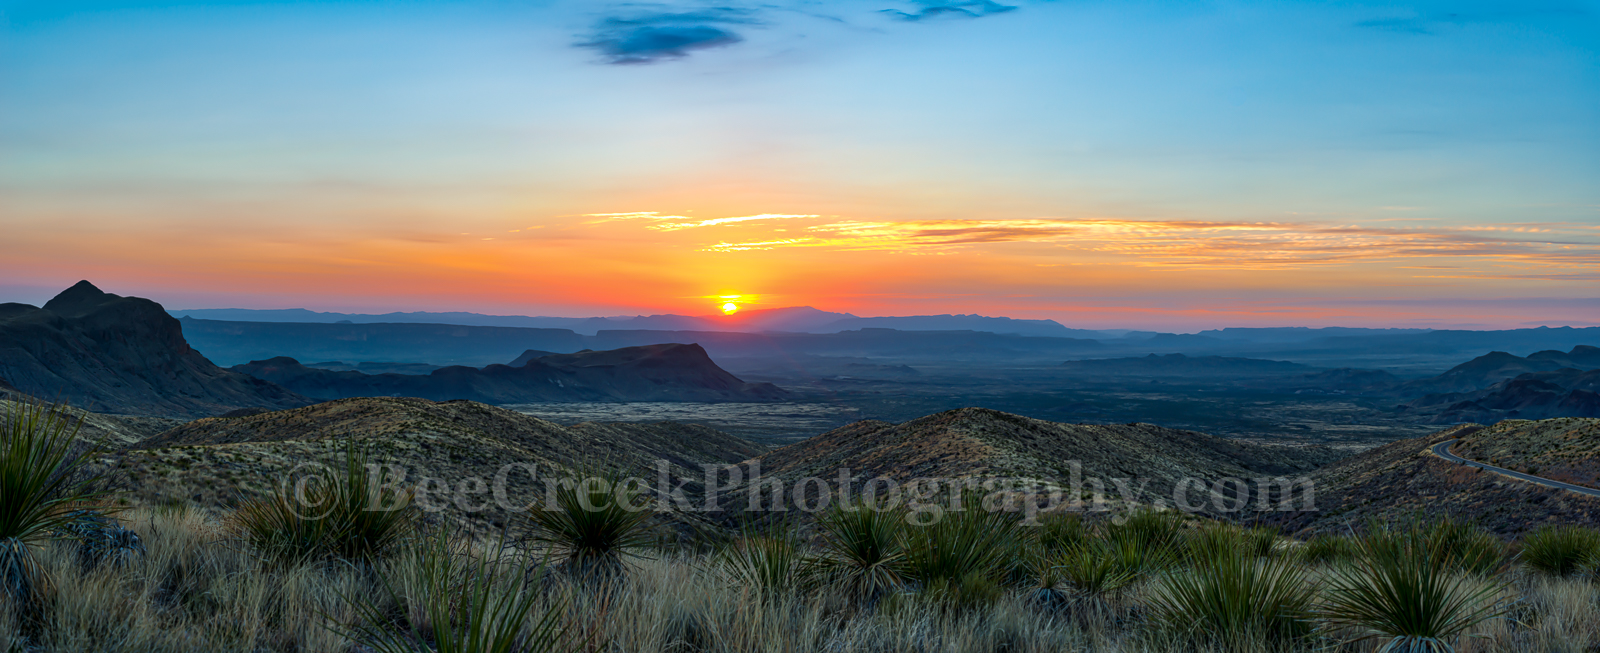 Big Bend National Park, Chihuahuan Desert, Dead Horse mountains, Mountains, Santa Elena Canyon, Sierra Ponce, Sotol Vista Overlook, colorful, landscape, pano, panorama, sky, sotol, sunset, yuccas, photo